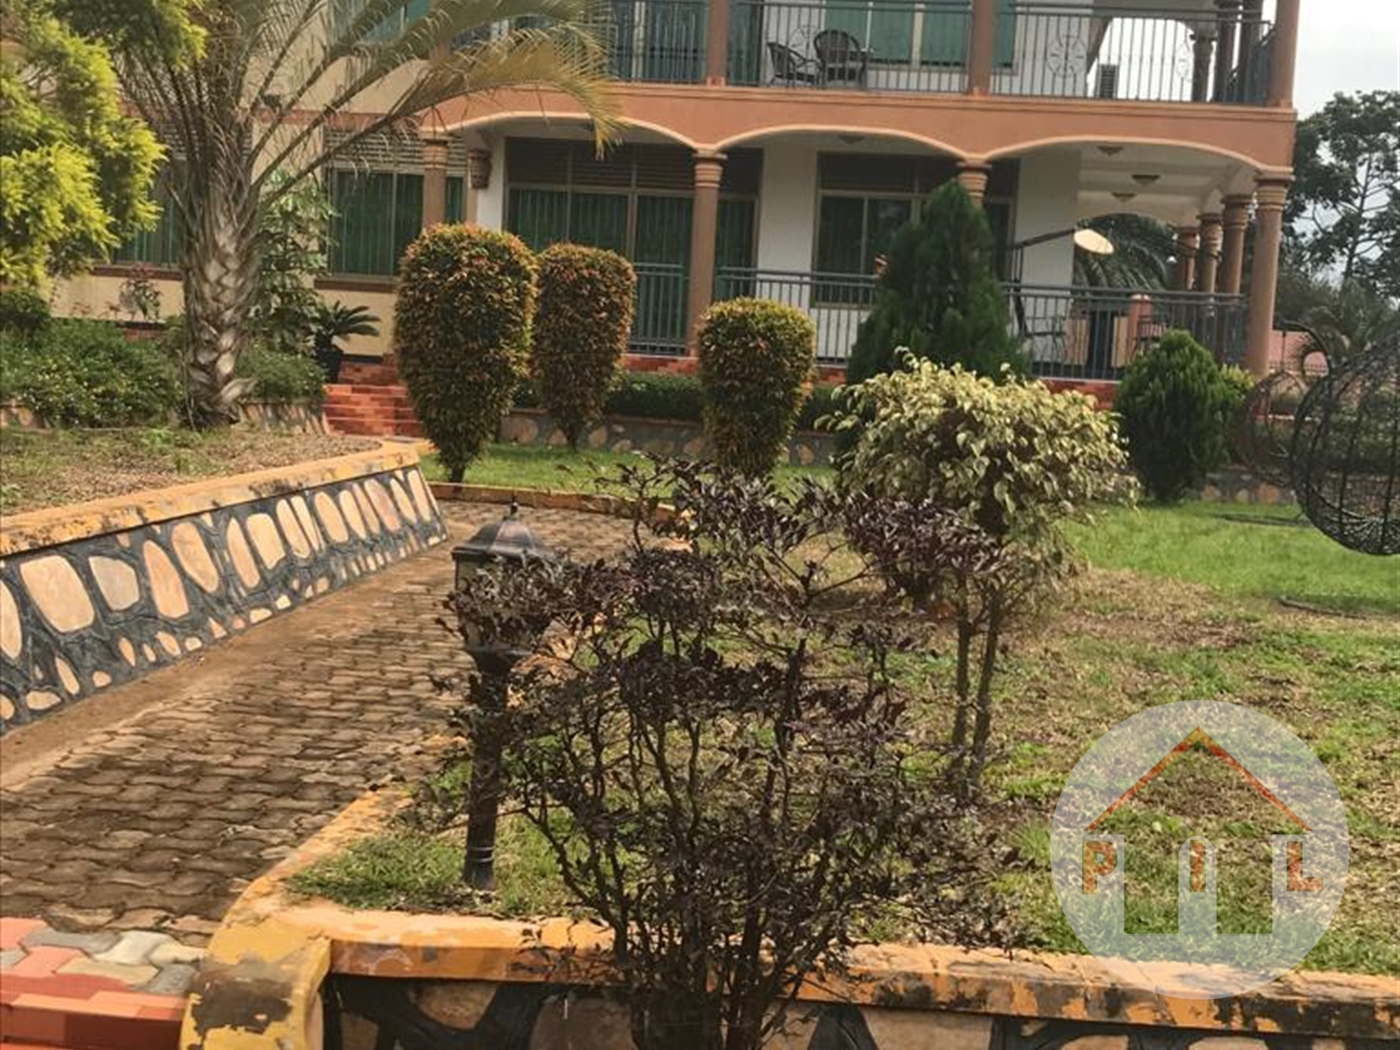 Apartment block for sale in Kyengera Wakiso